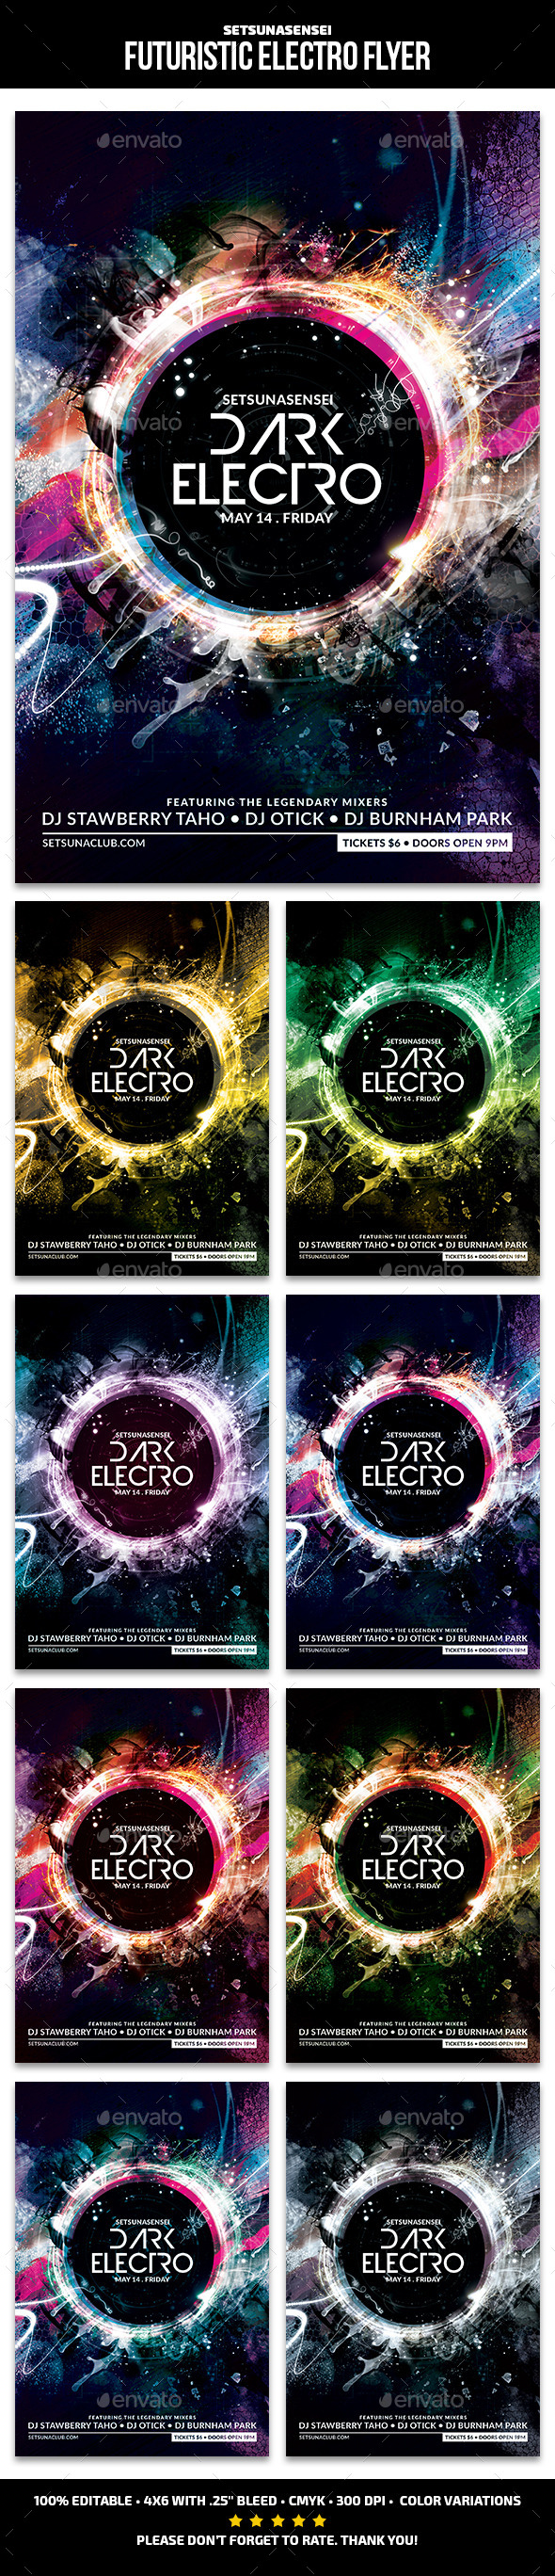 Futuristic Electro Flyer - Clubs & Parties Events